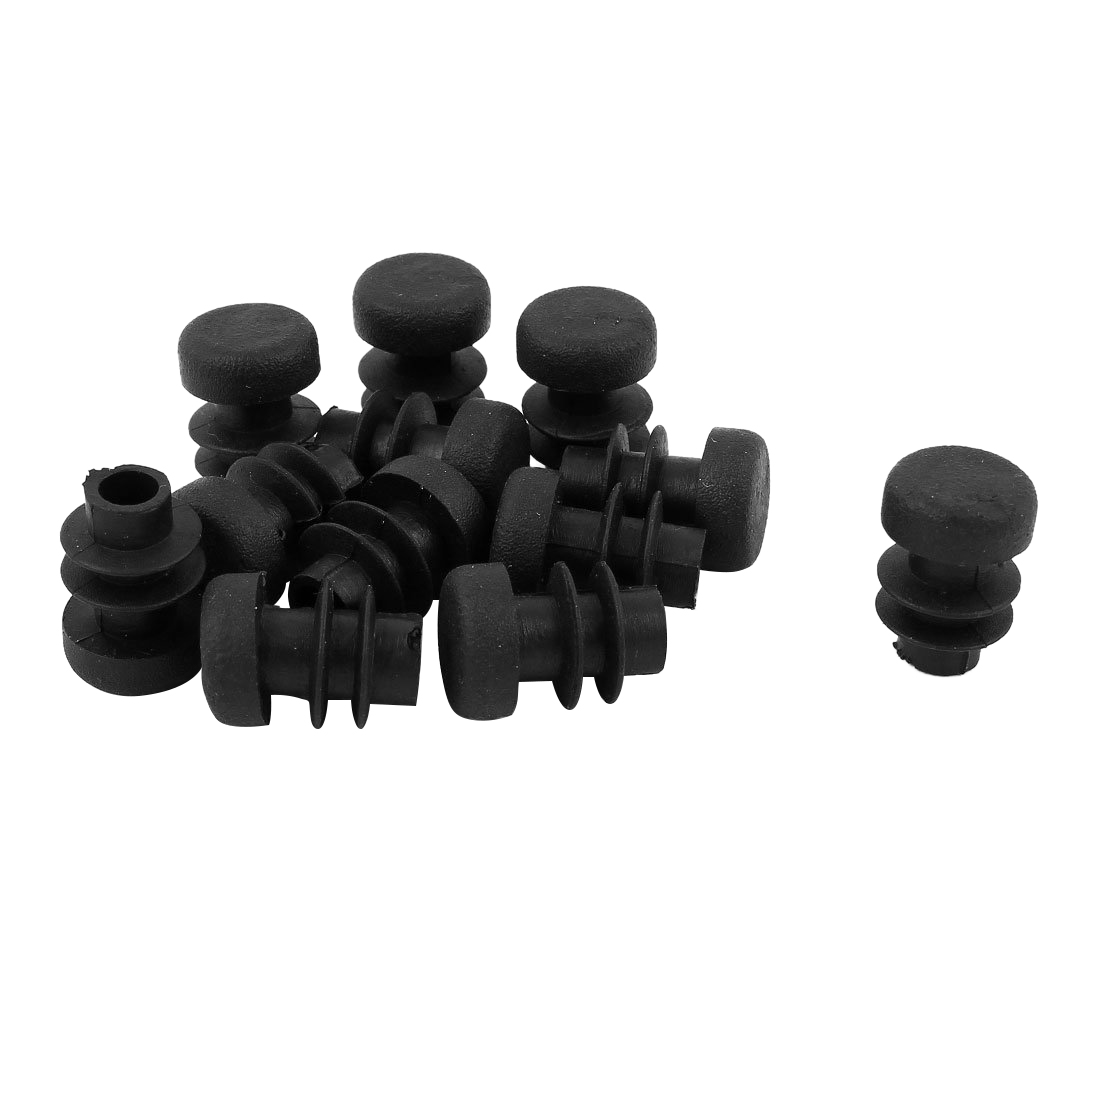 AIMA 12 Pcs Plastic 12mm Pipe End Blanking Caps Bung Tube Insert Plug Round Black blade holder with self oil feeder for glass cutting cutter